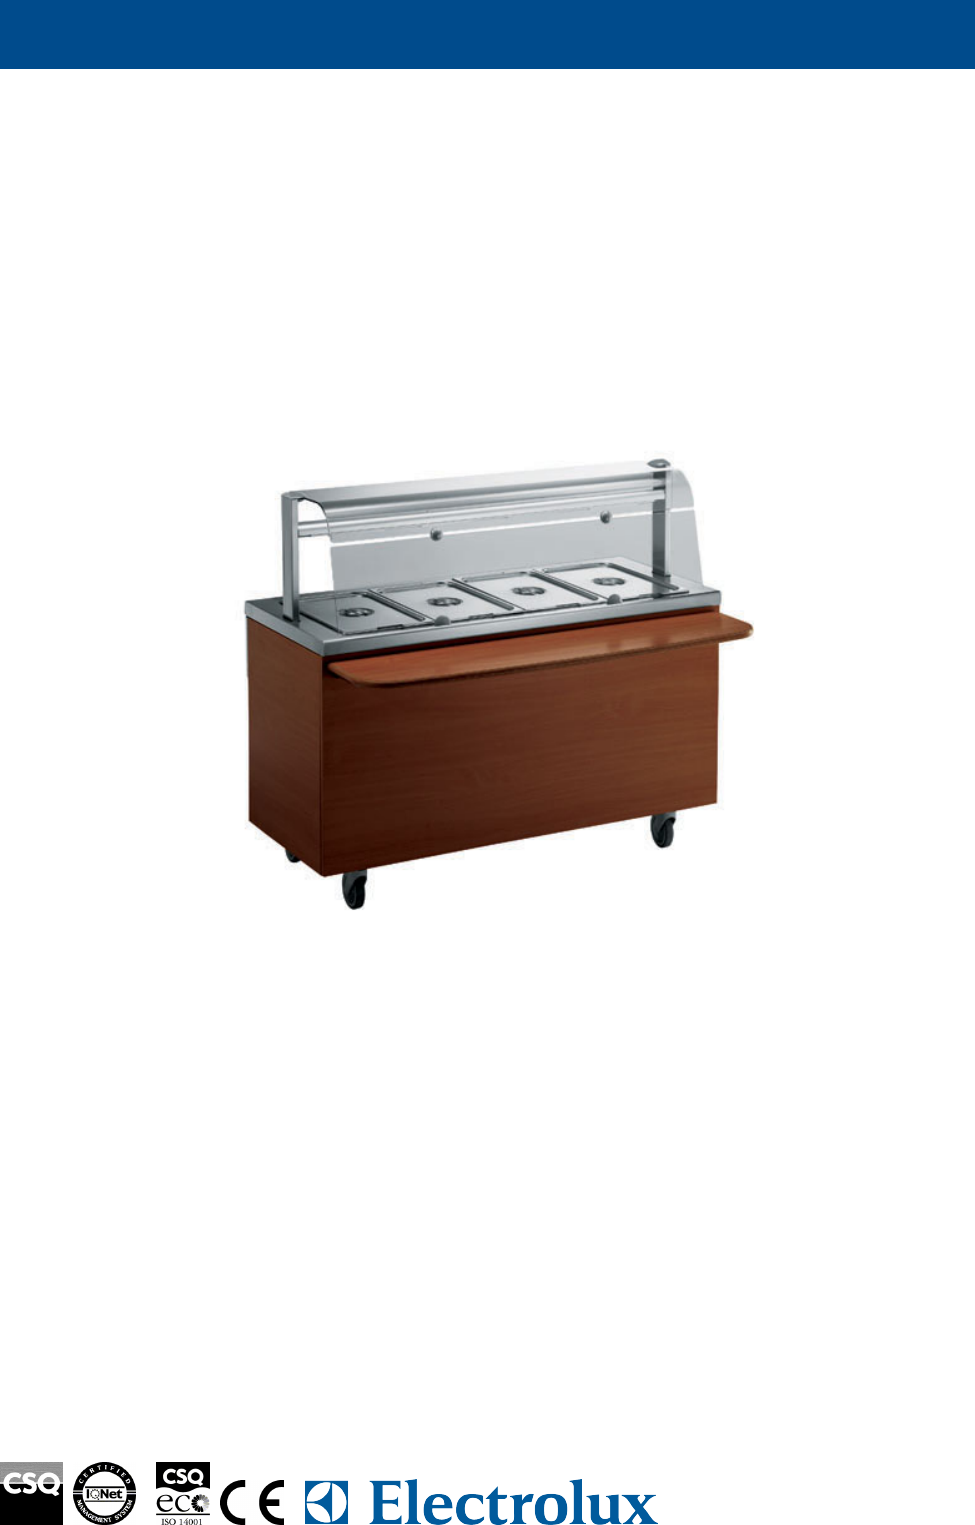 electrolux food warmer bain marie units user guide manualsonline com rh kitchen manualsonline com